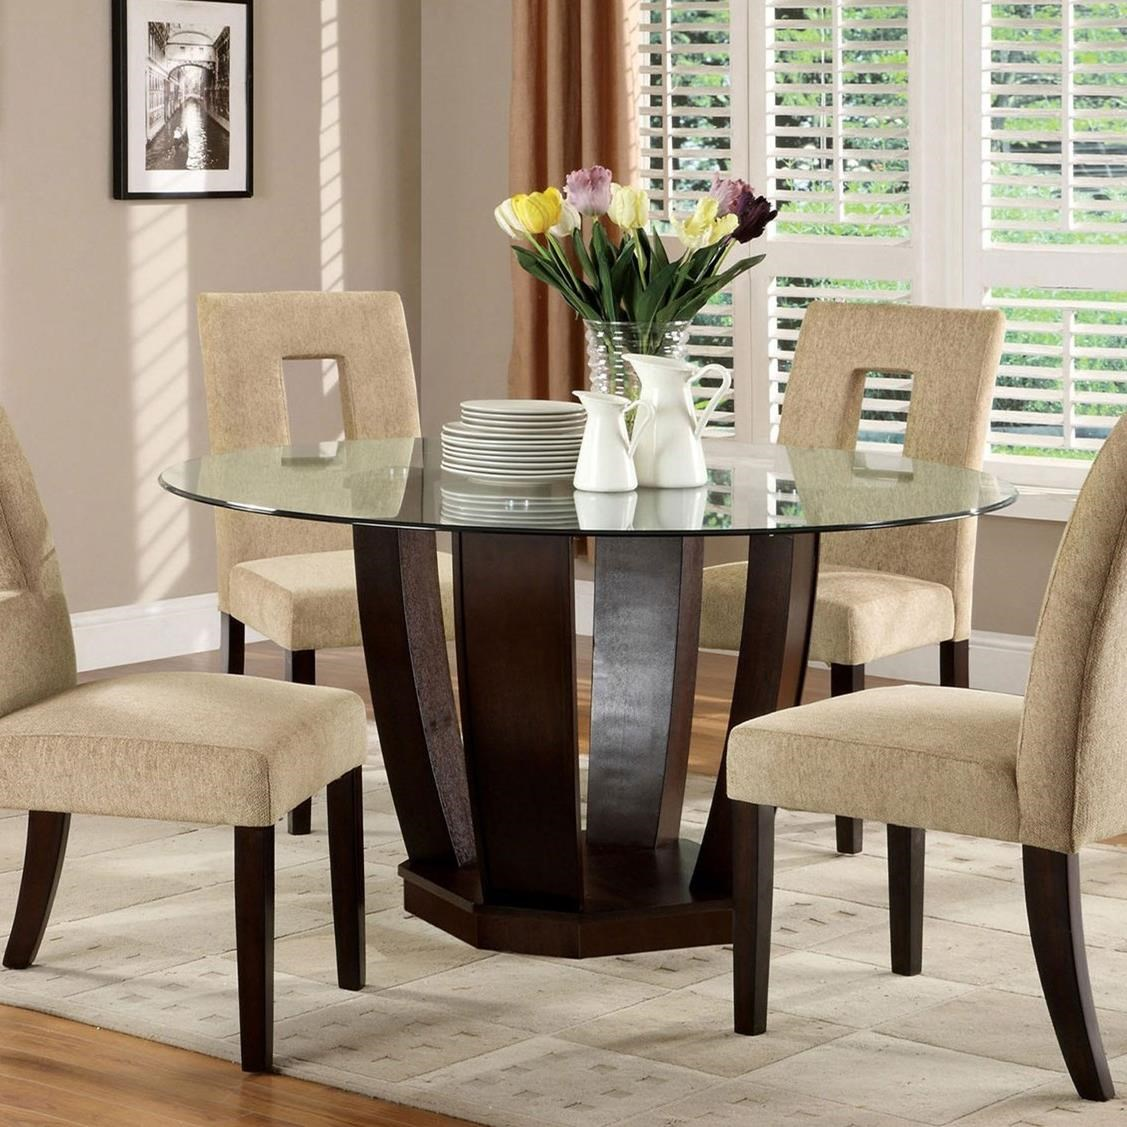 Furniture Of America West Palm Glass Top Round Dining